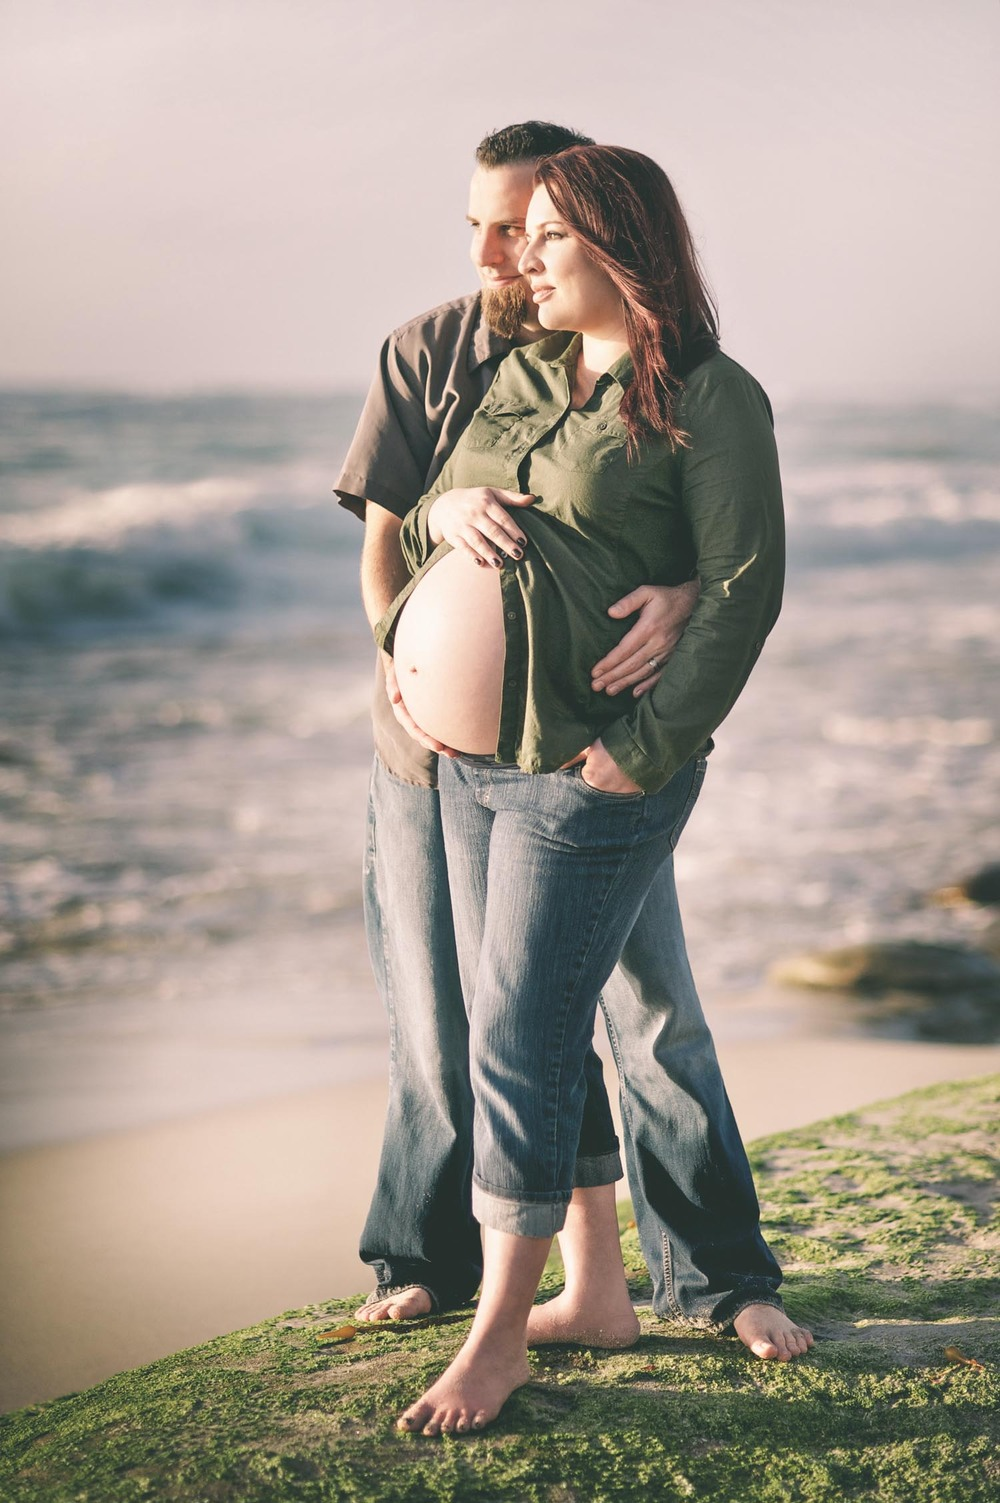 san diego portrait photographer 586.jpg